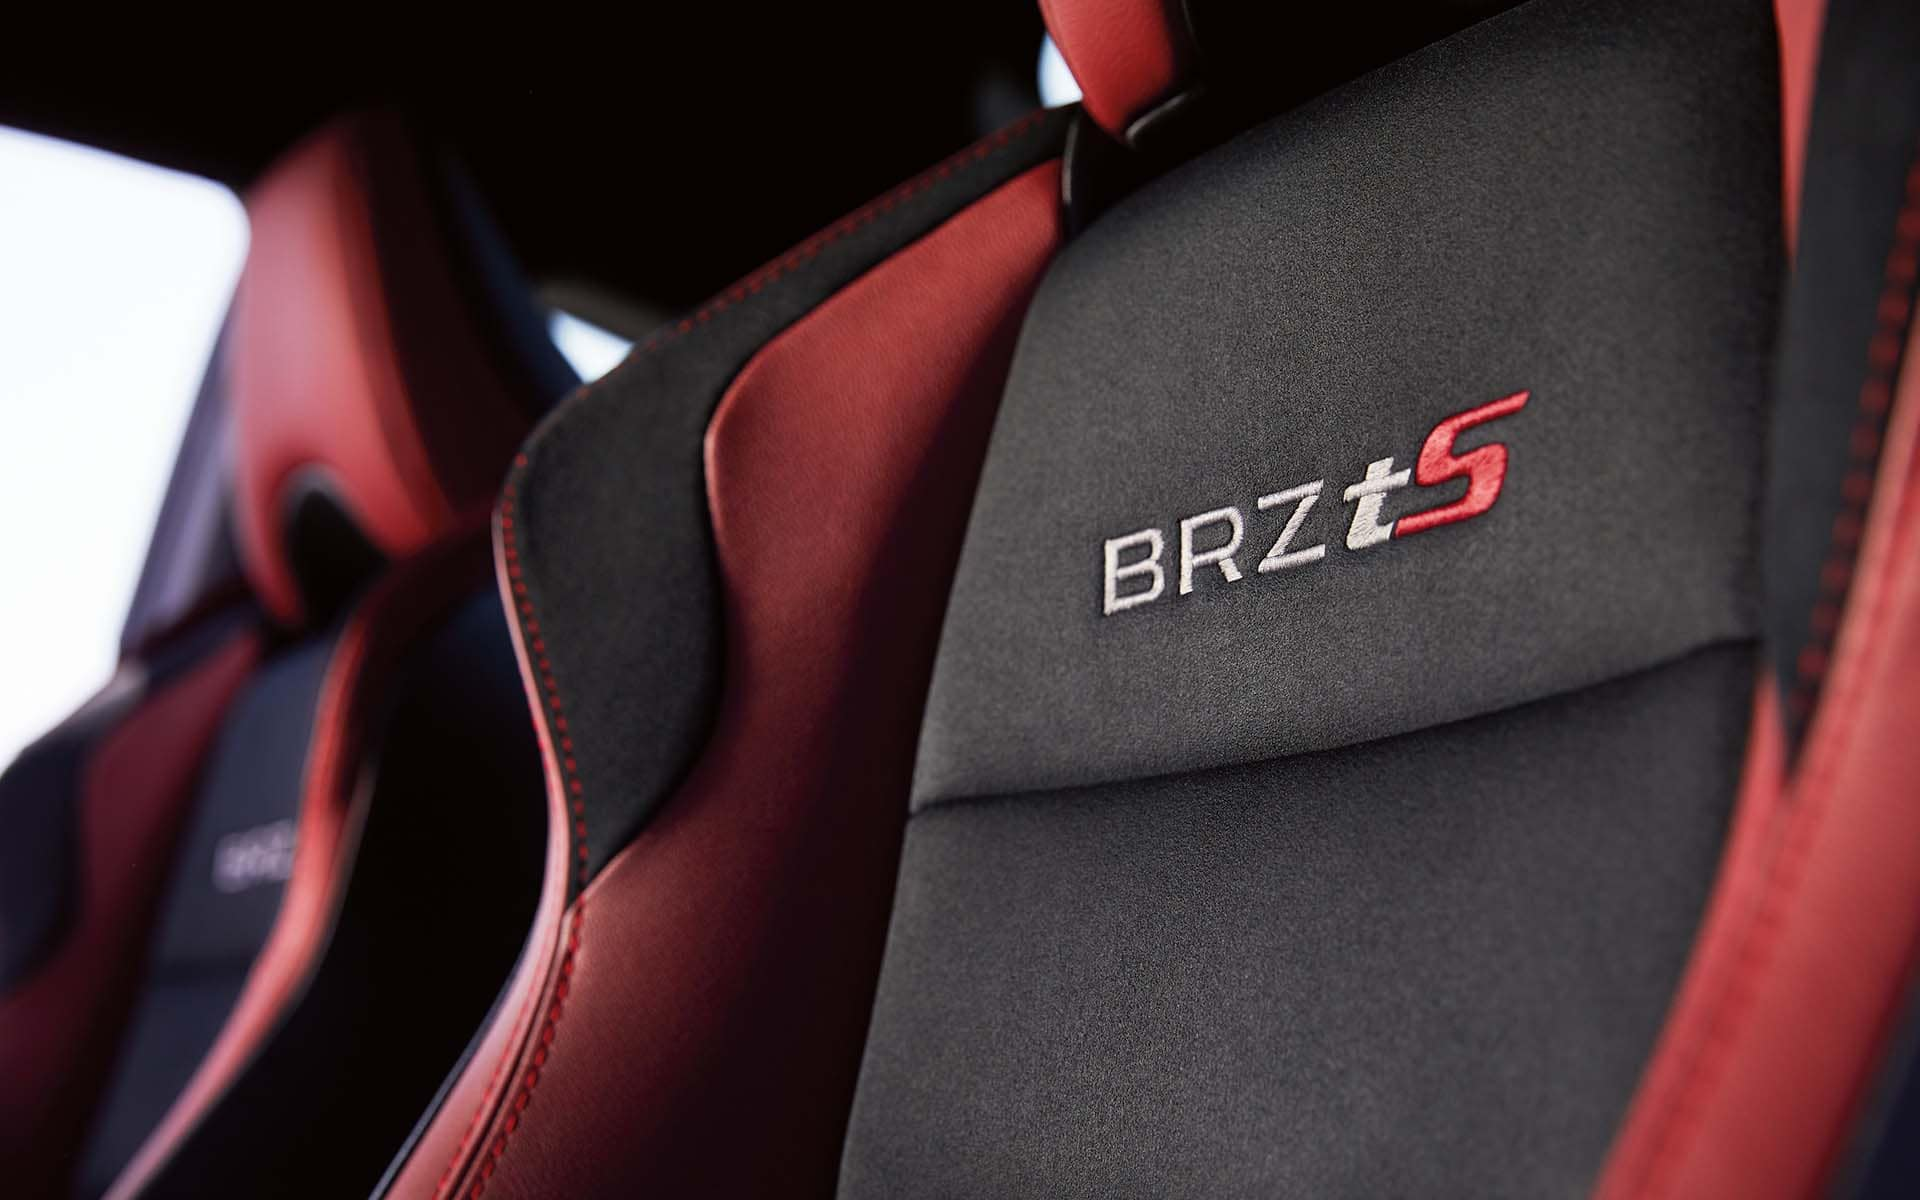 Close up view of 2020 Subaru BRZ tS Alcantara leather trimmed seats with red accents